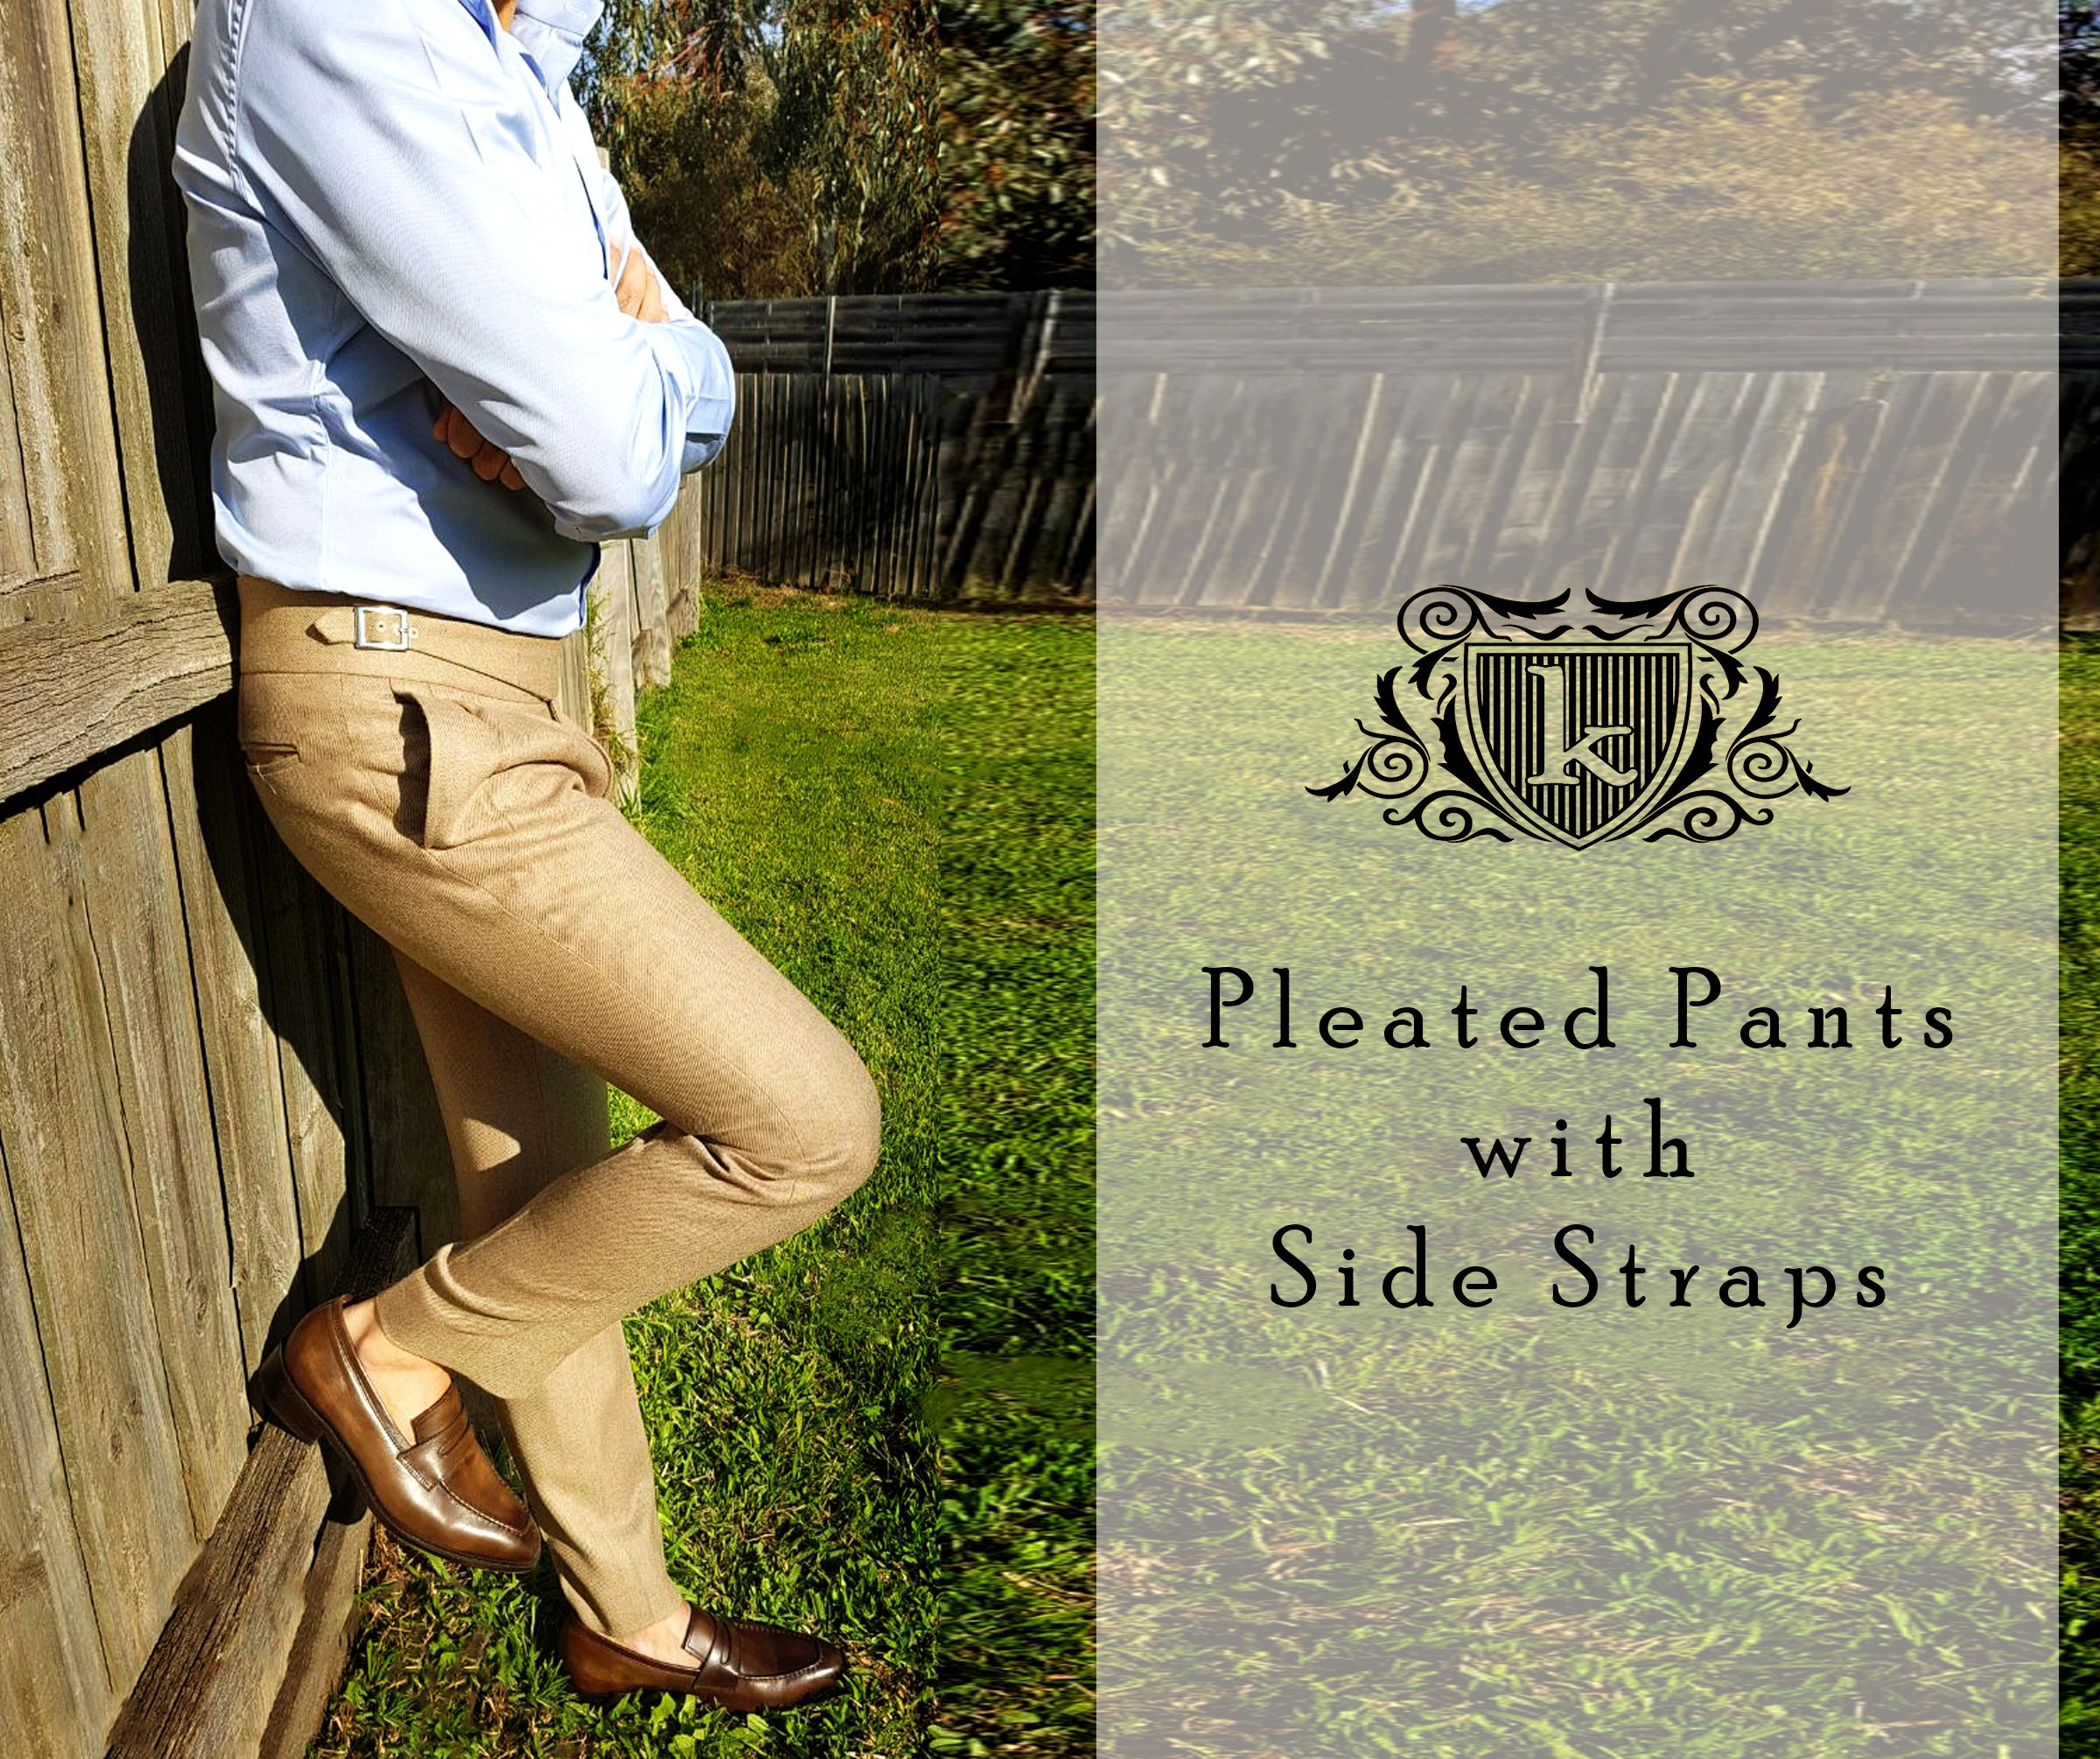 Pleated Trouser Pants Woolen Pant Loafers Melbourne Fashion Classy